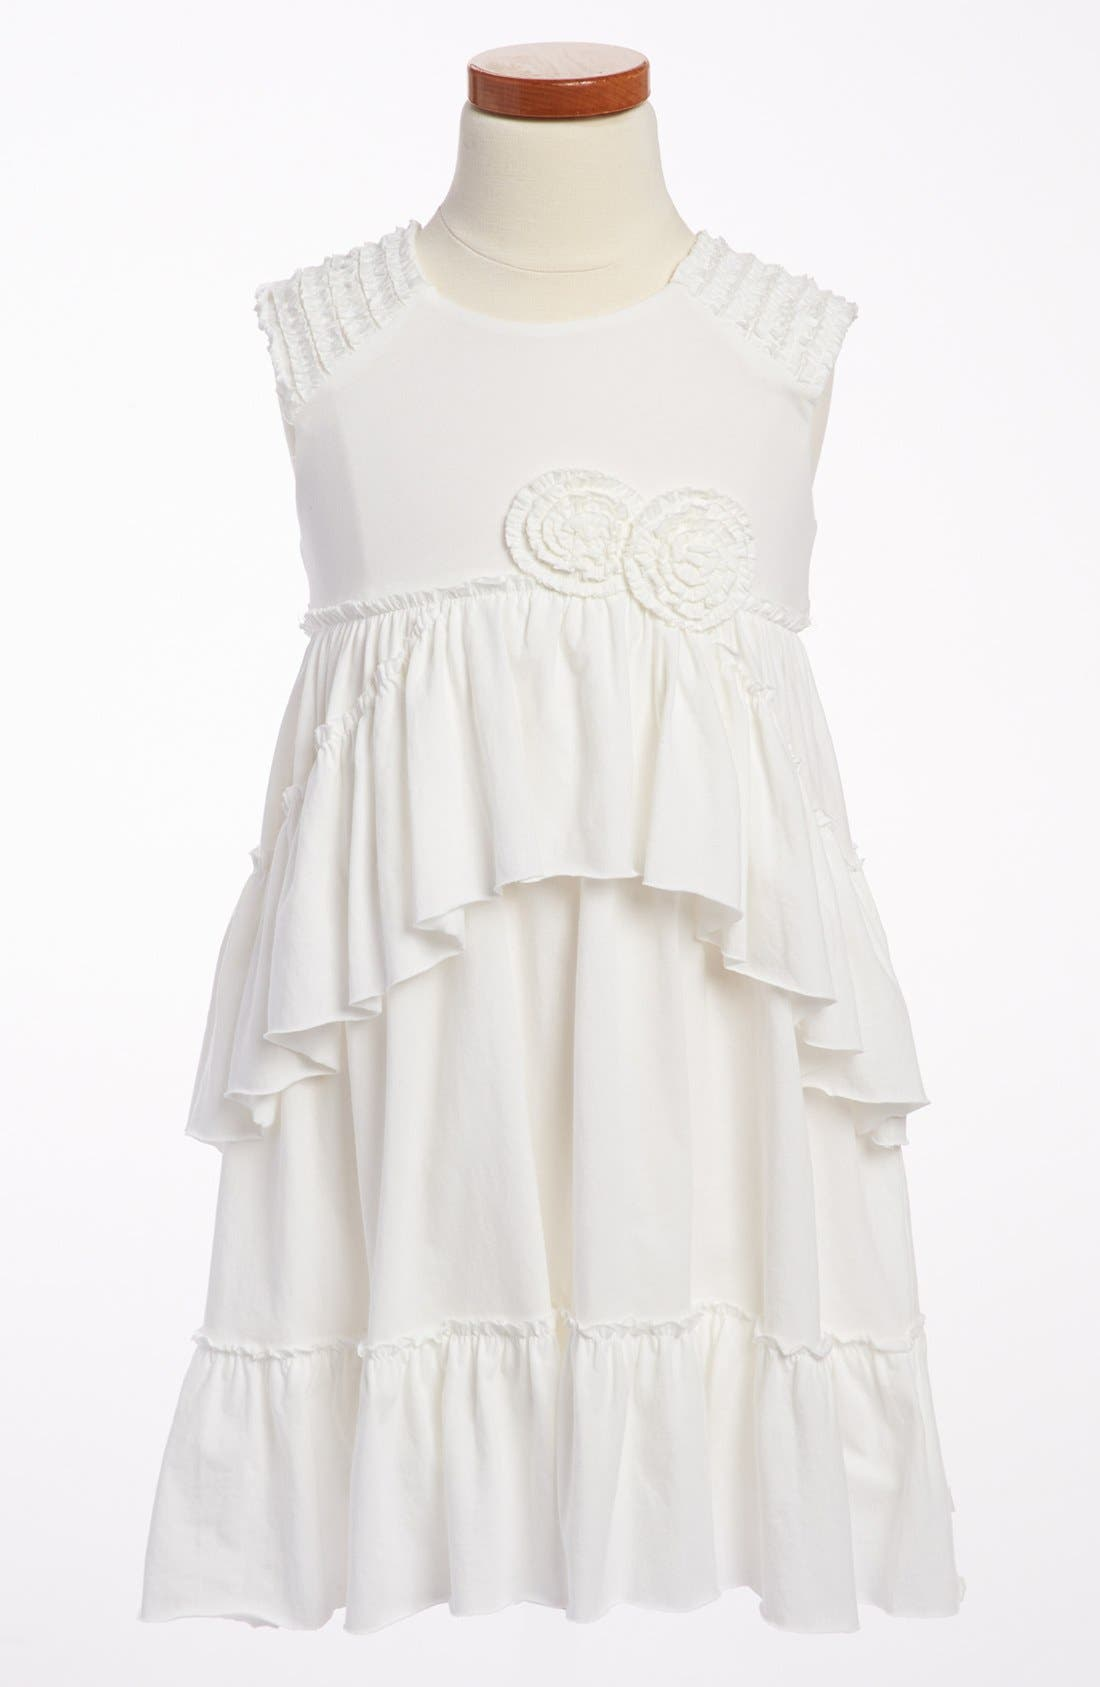 Alternate Image 1 Selected - Isobella & Chloe 'Rebecca' Ruffle Dress (Little Girls & Big Girls)